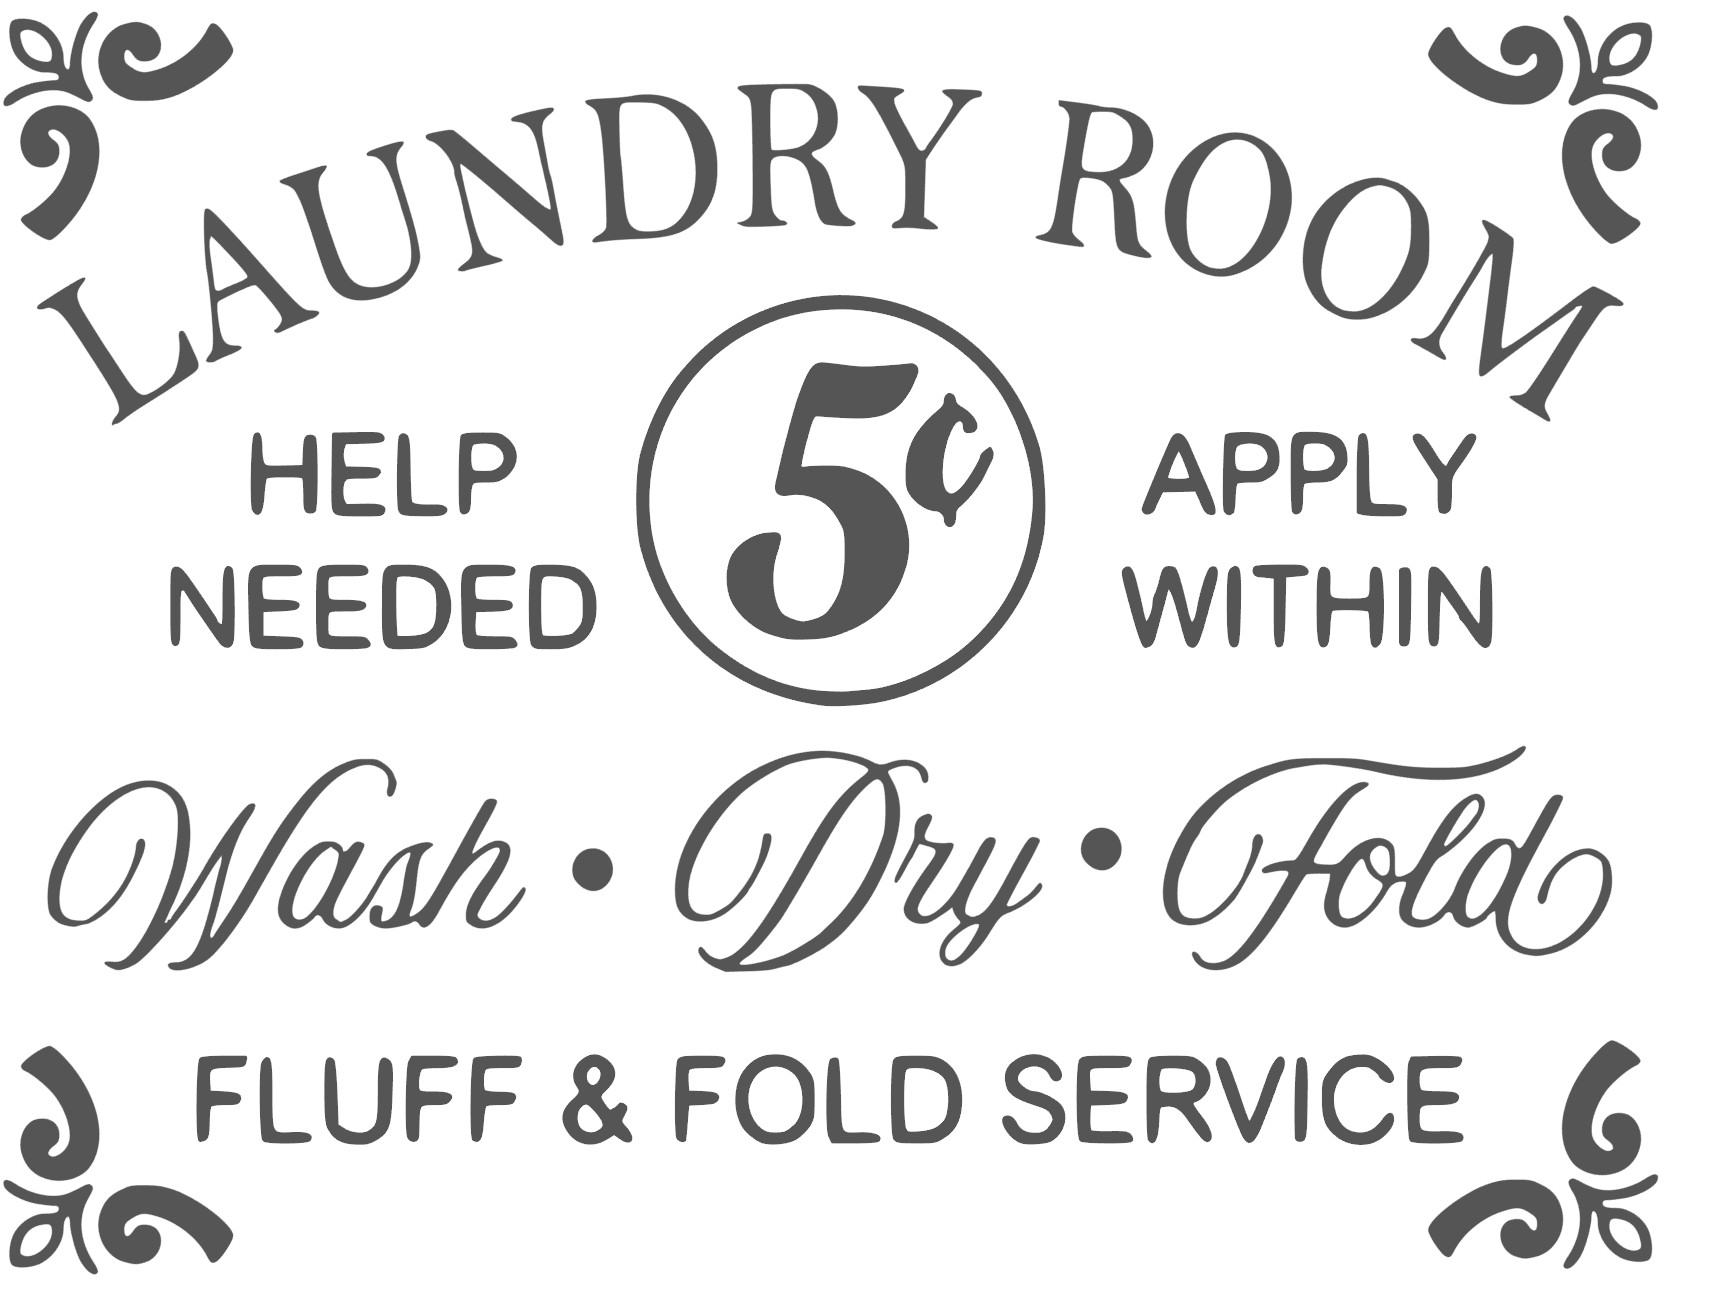 Free Vintage Laundry Room Sign File Jpg Png Studio3 Svg Vintage Laundry Room Craft Room Signs Laundry Room Printables